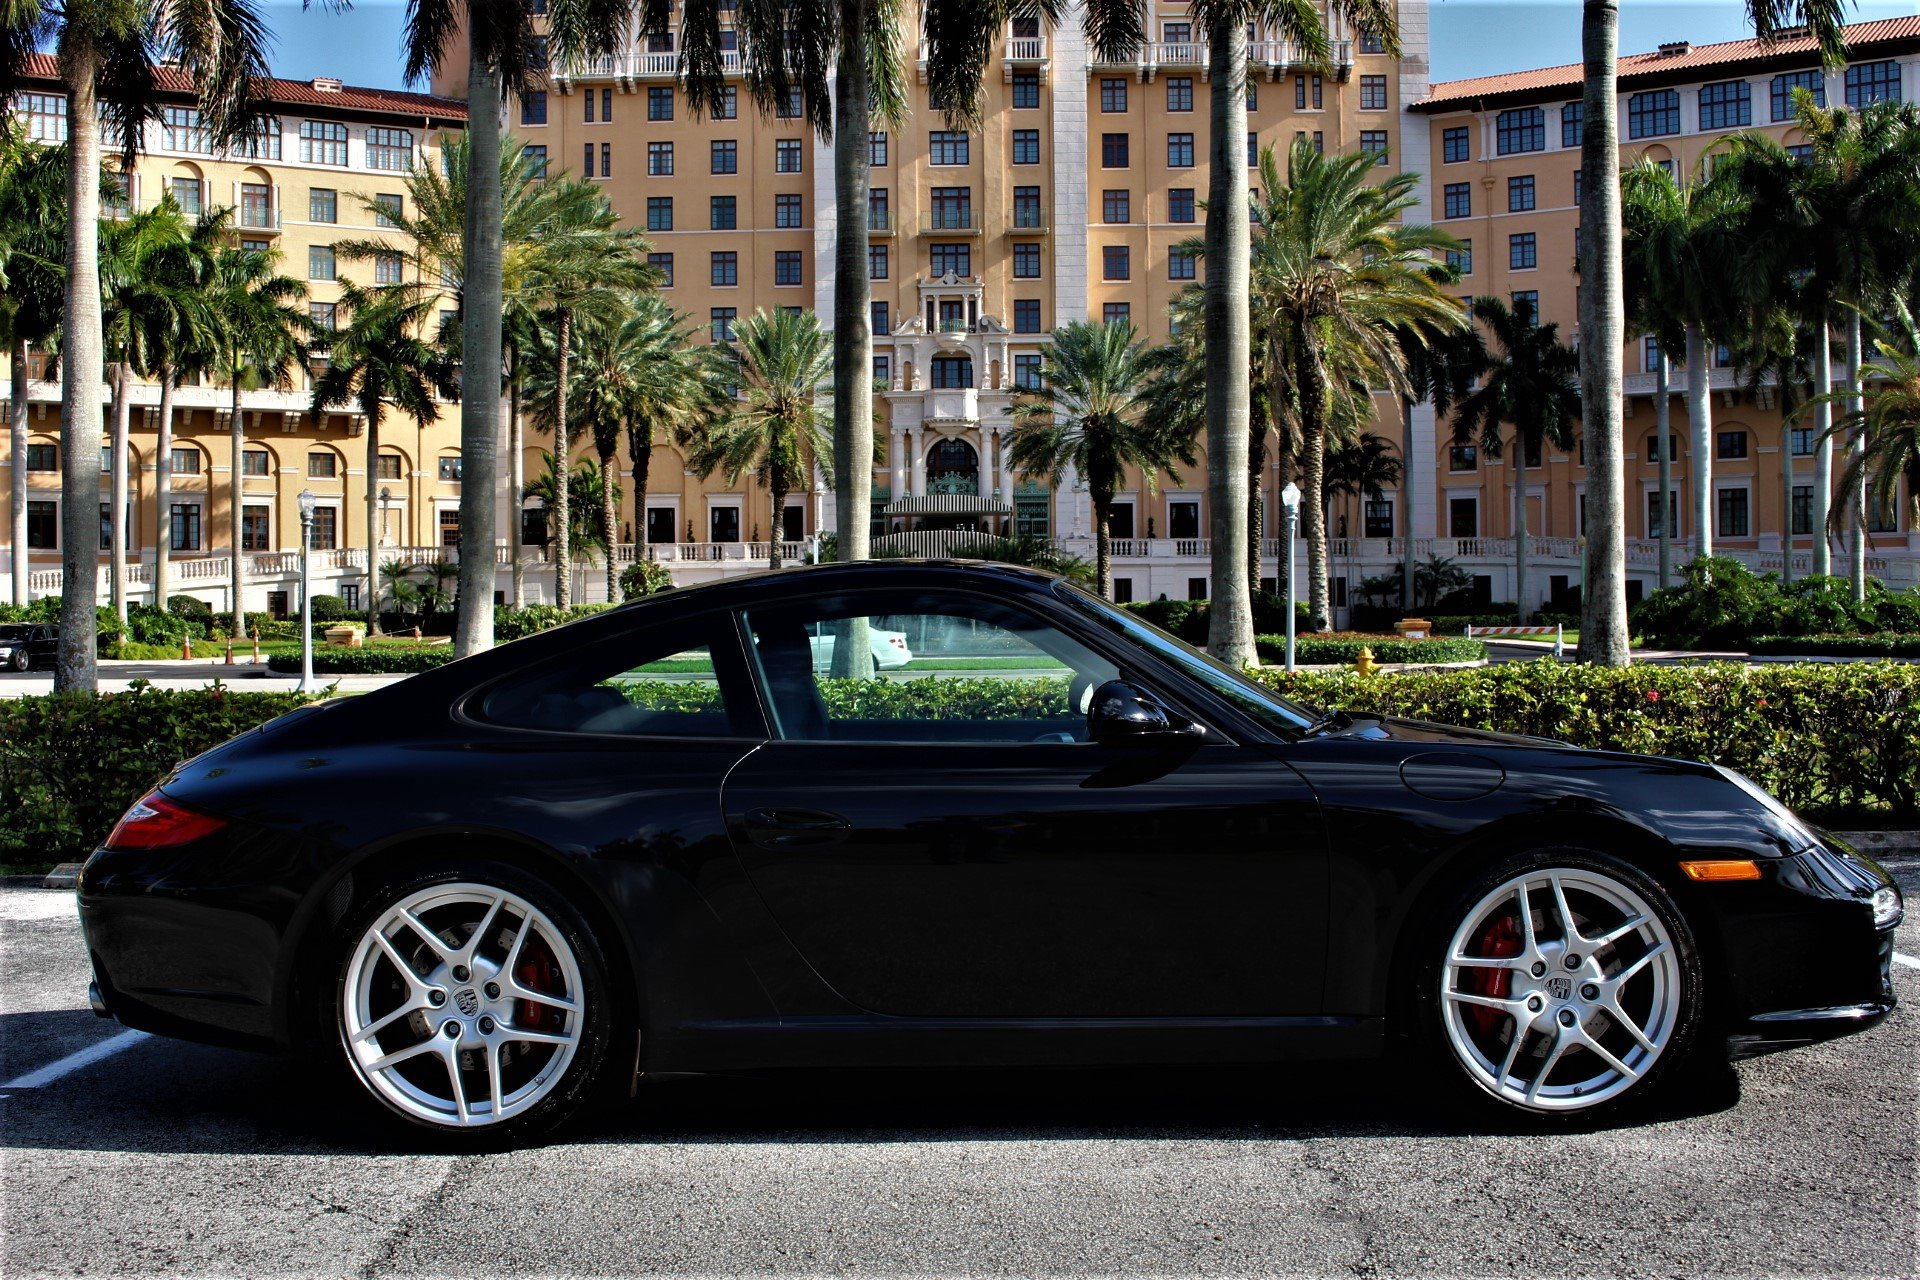 Used 2010 Porsche 911 Carrera S for sale Sold at The Gables Sports Cars in Miami FL 33146 3